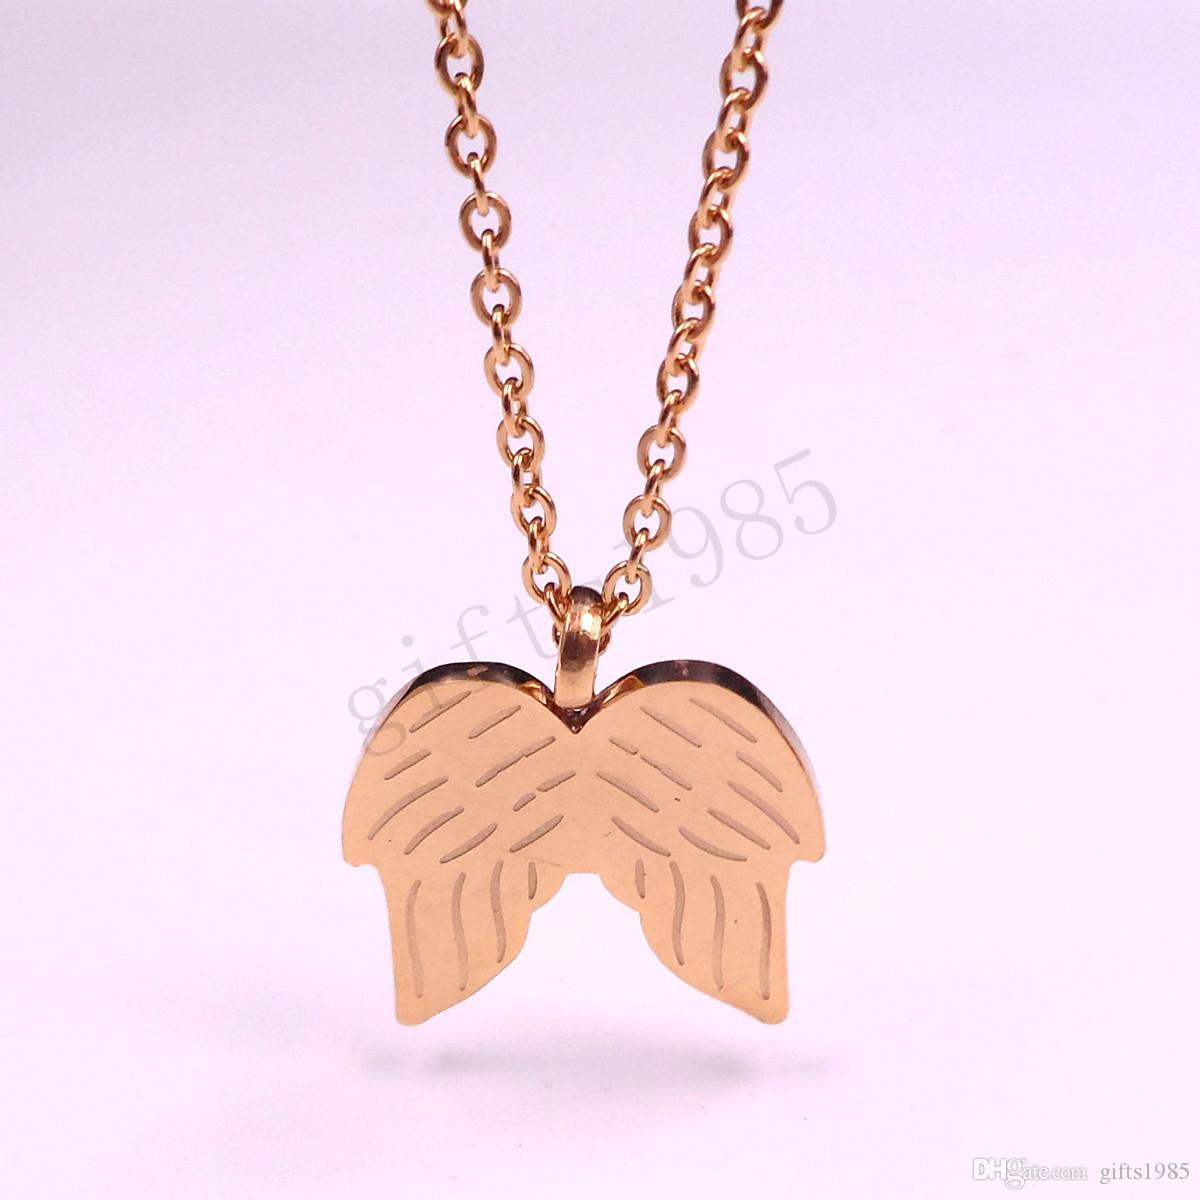 men necklaces pieces pendant long product gold best gift angel silver necklace design fashion wings woman chain friend mens wholesale hip filling jewelry hop